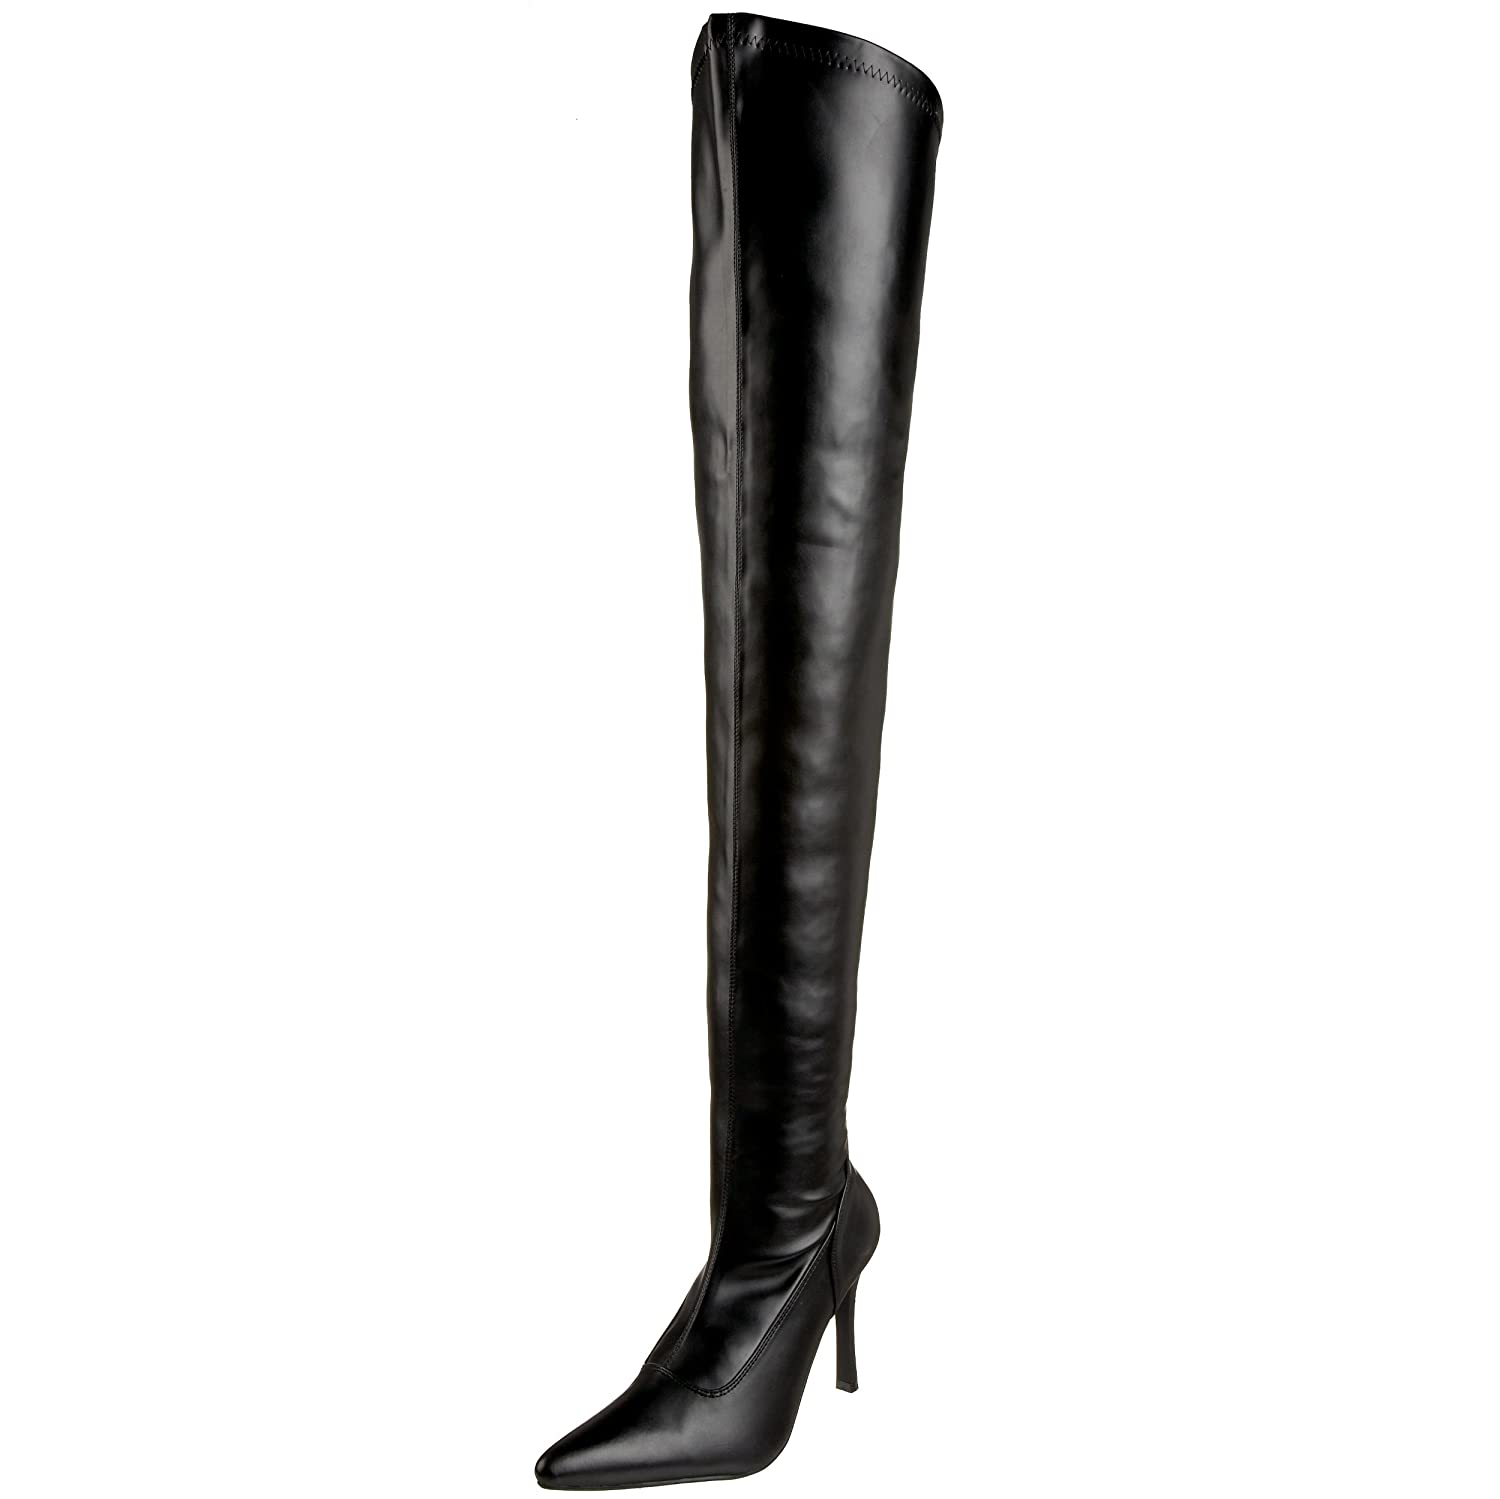 6db6fb6a1f2 Funtasma by Pleaser Women s Lust-3000 Boot  Amazon.co.uk  Shoes   Bags